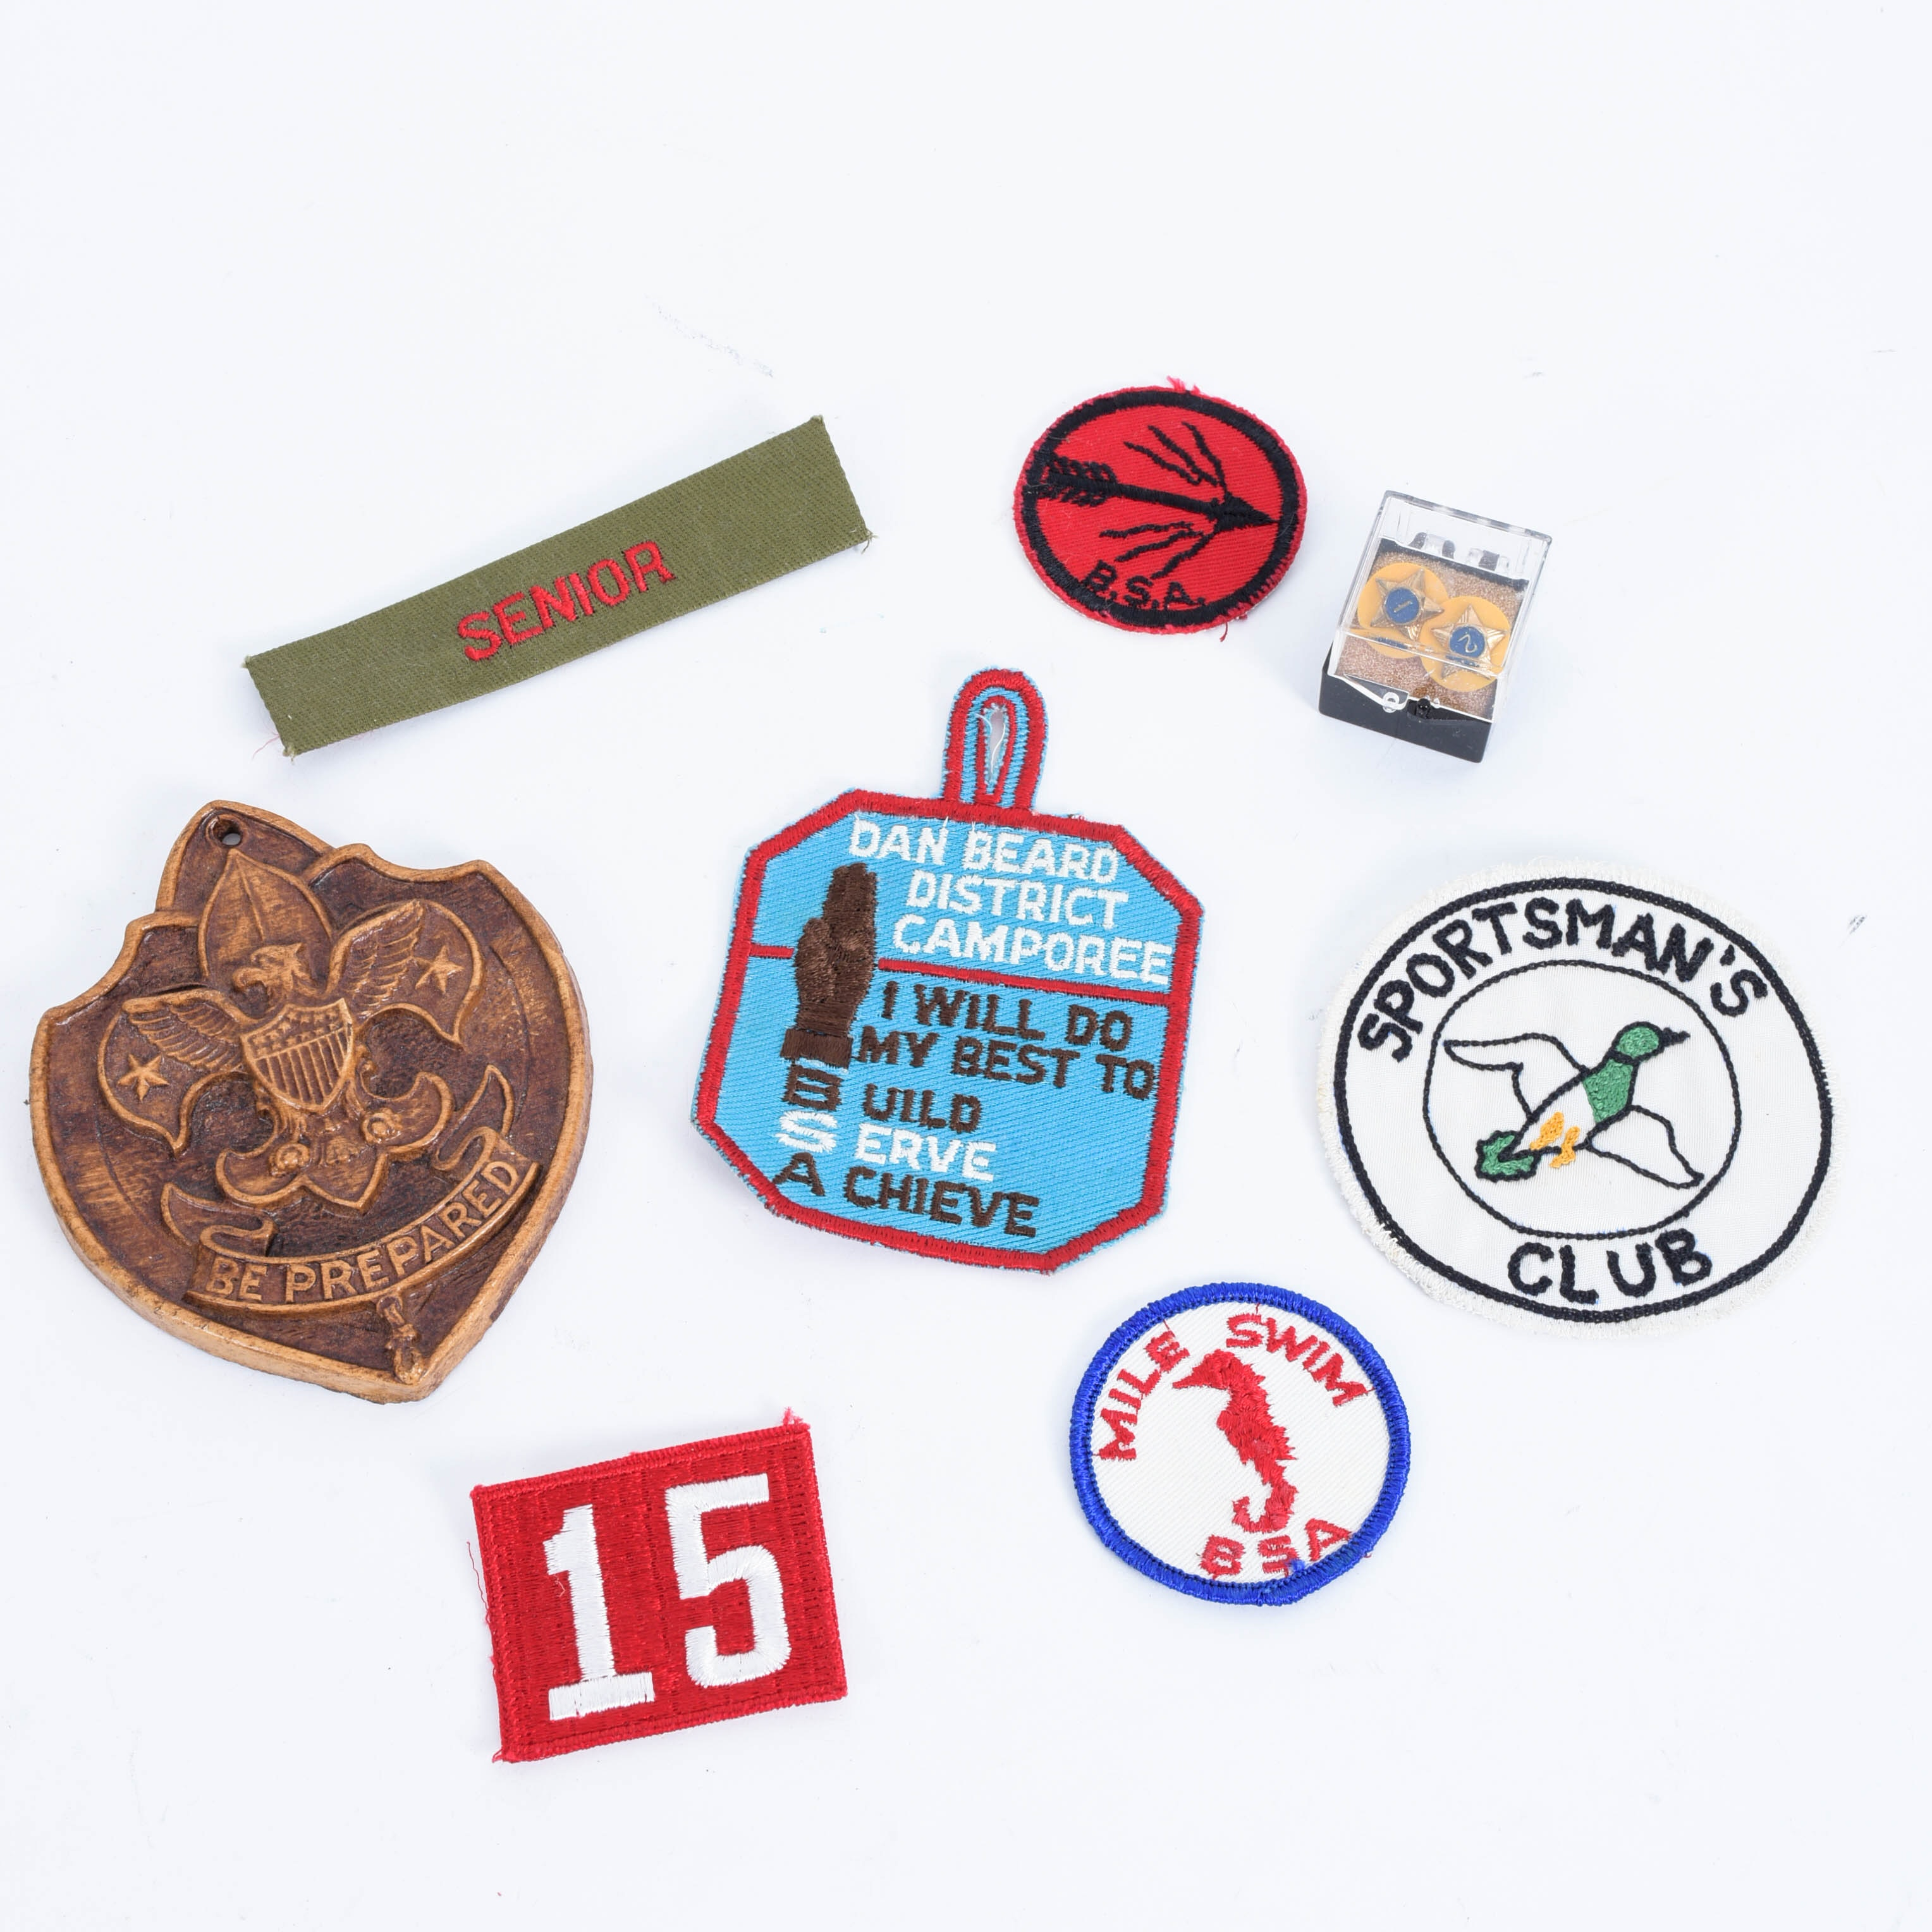 Boy Scouts of America Patches and Pins